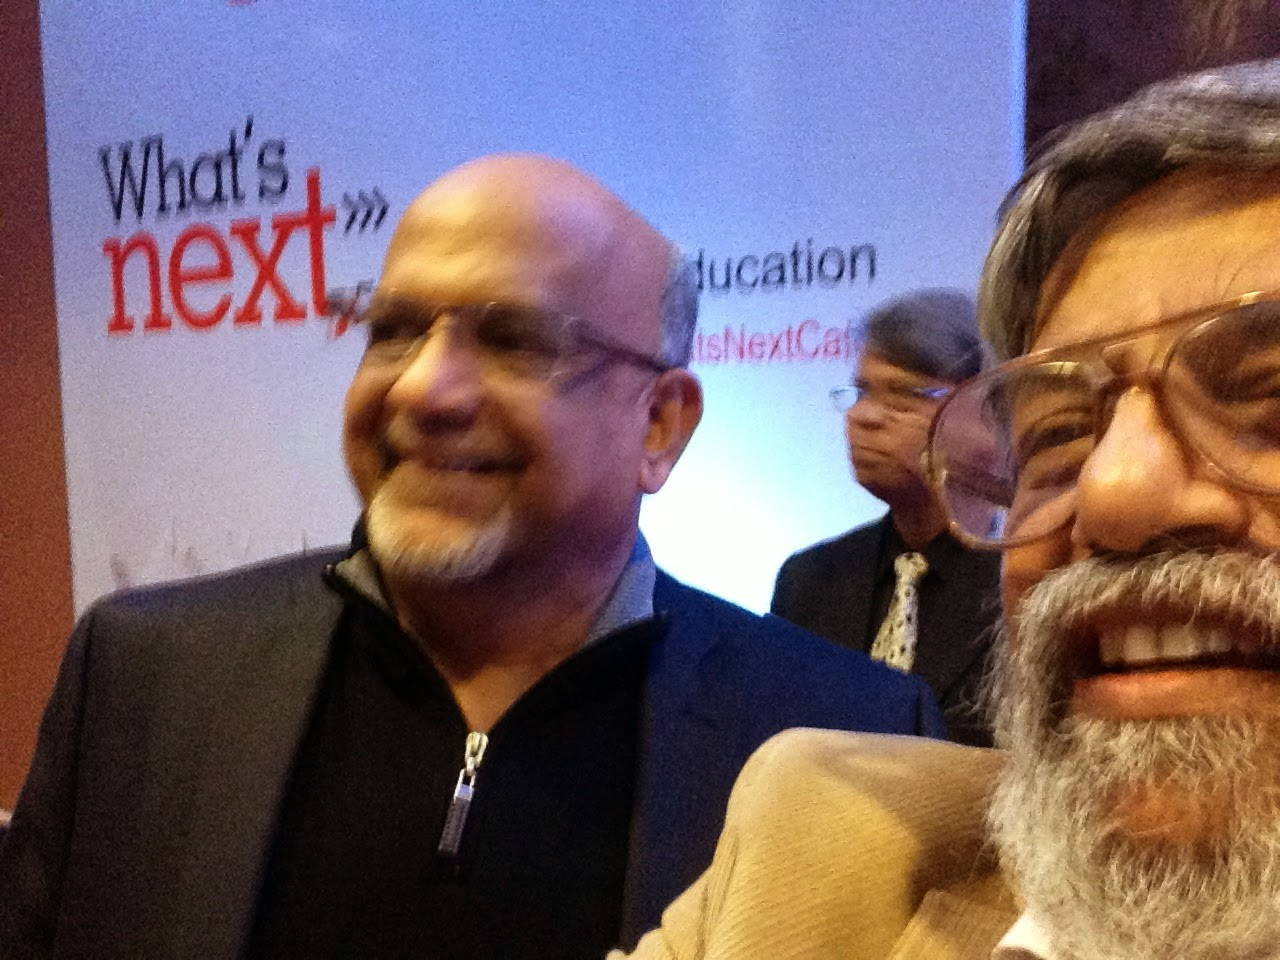 Design for India: Whats Next: Future of Design Education